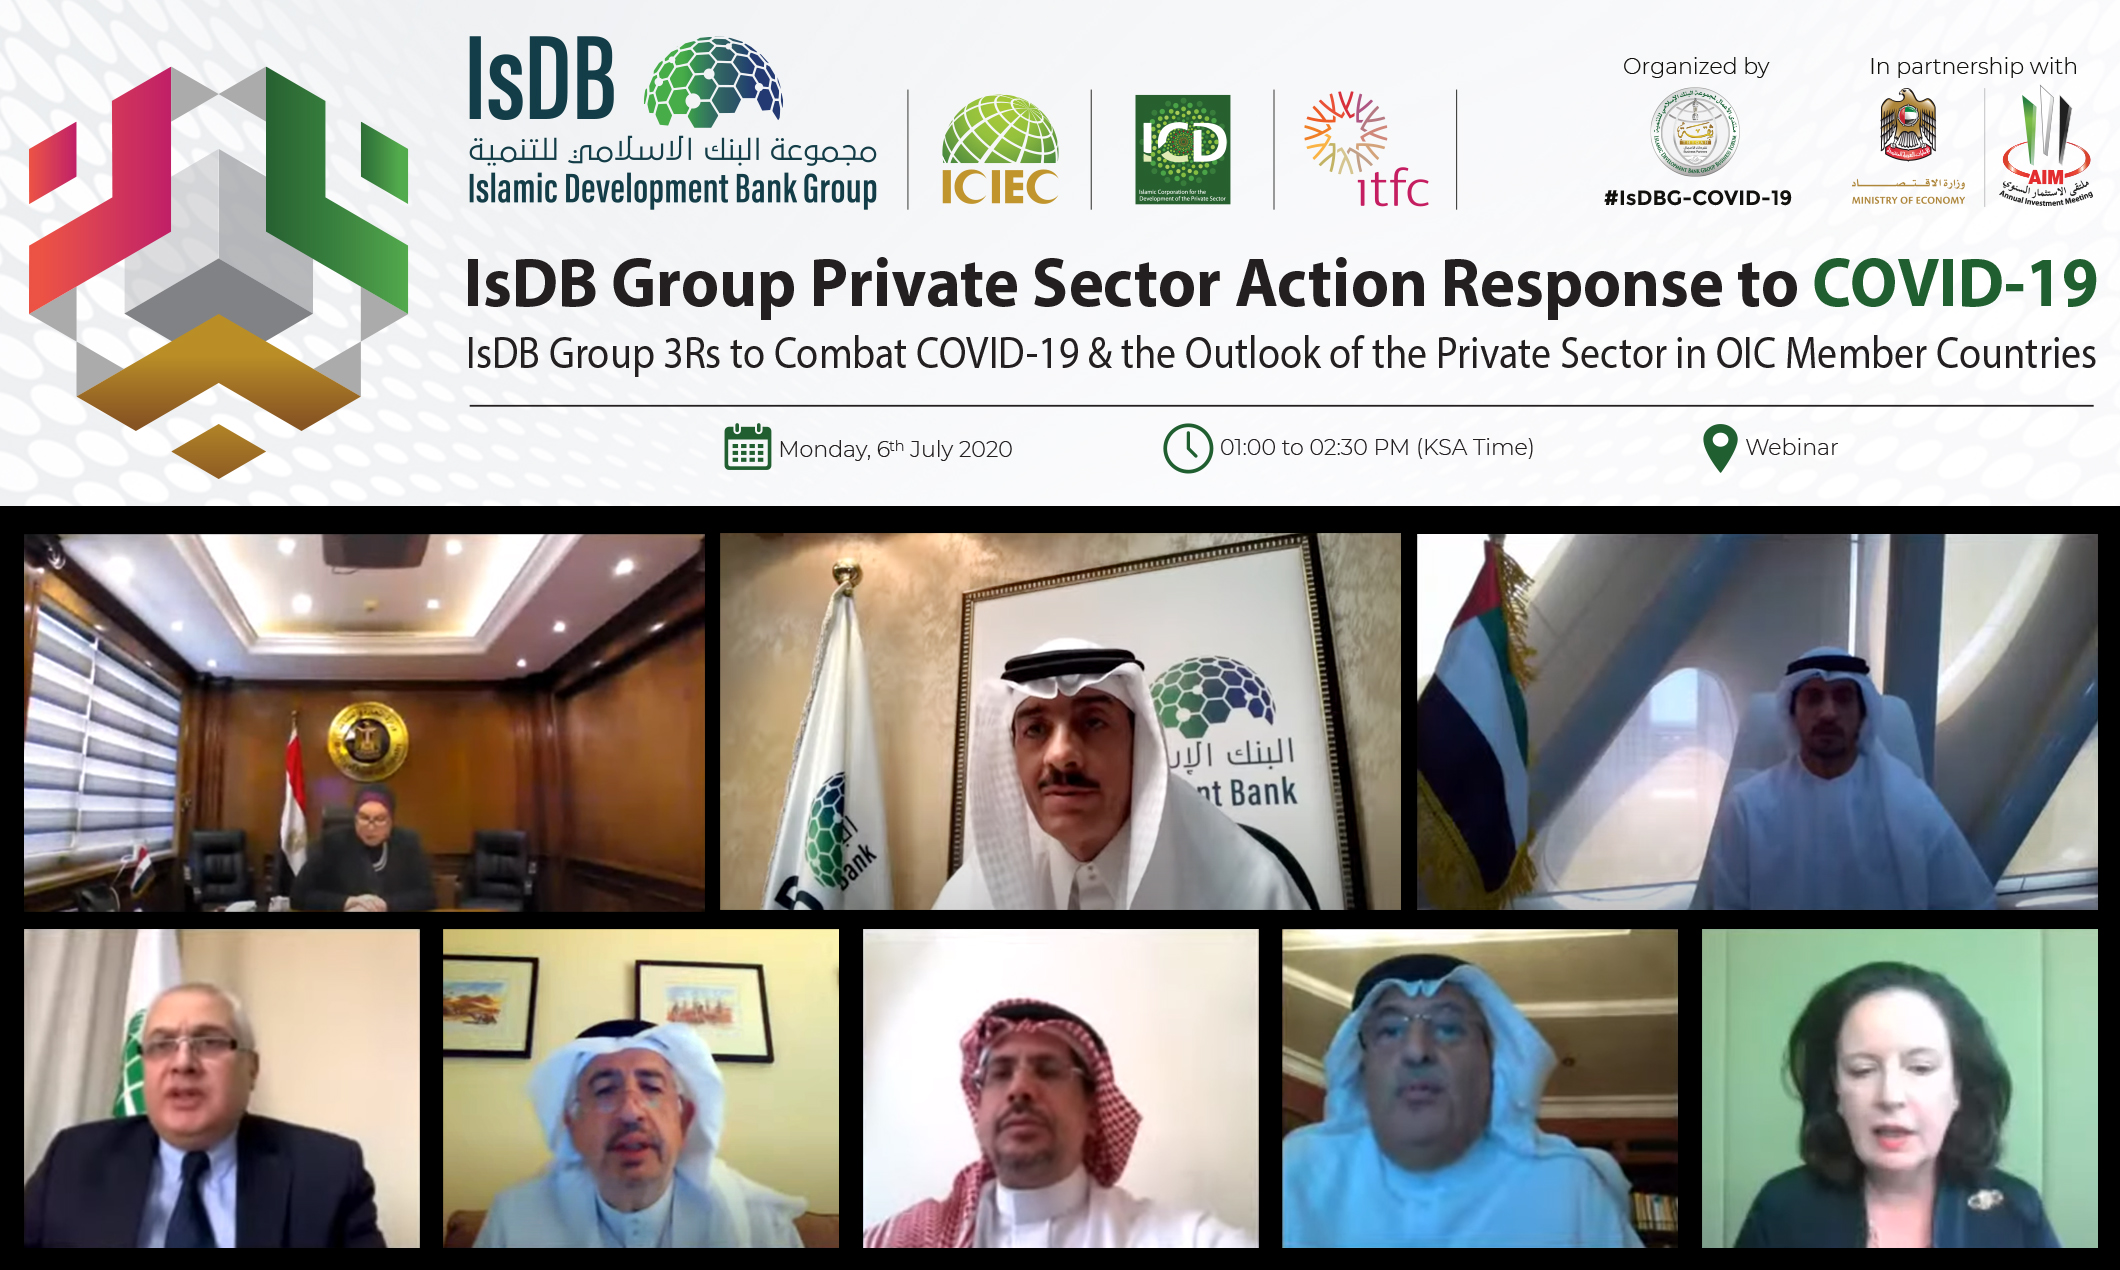 Islamic Development Bank Group (IsDB Group)